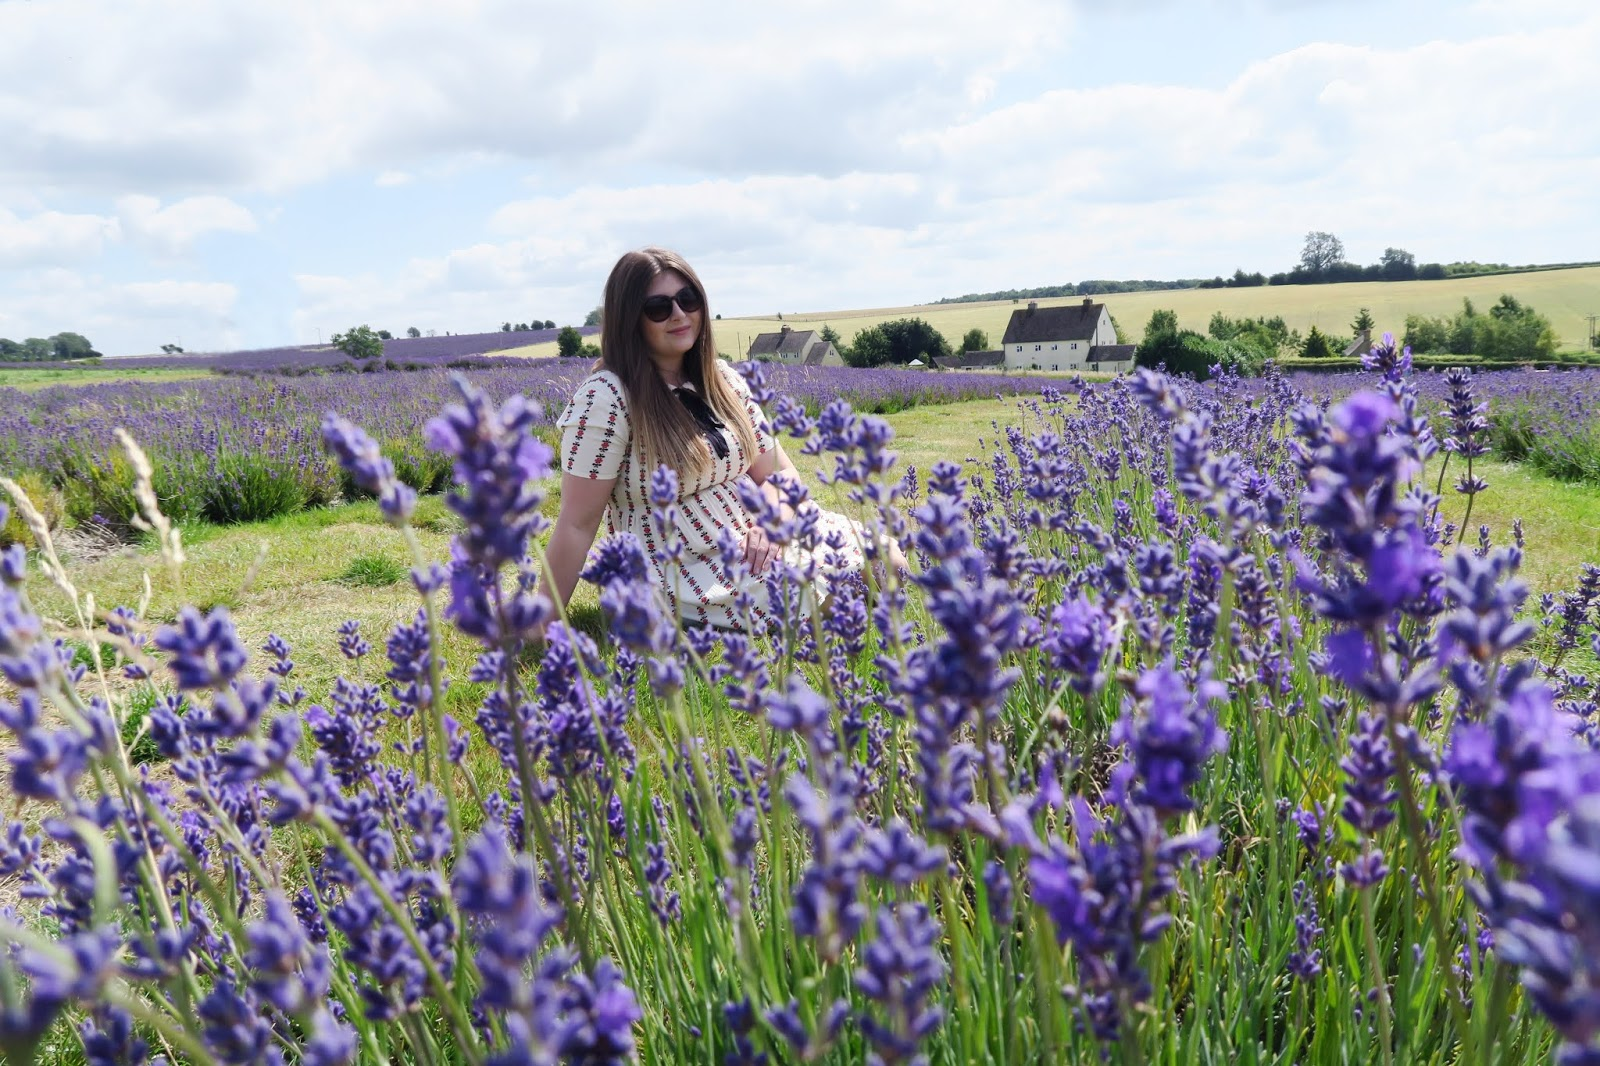 Grace is sitting down between rows of lavender. Out of focus lavender can be seen in front of her and behind her farm houses can be seen